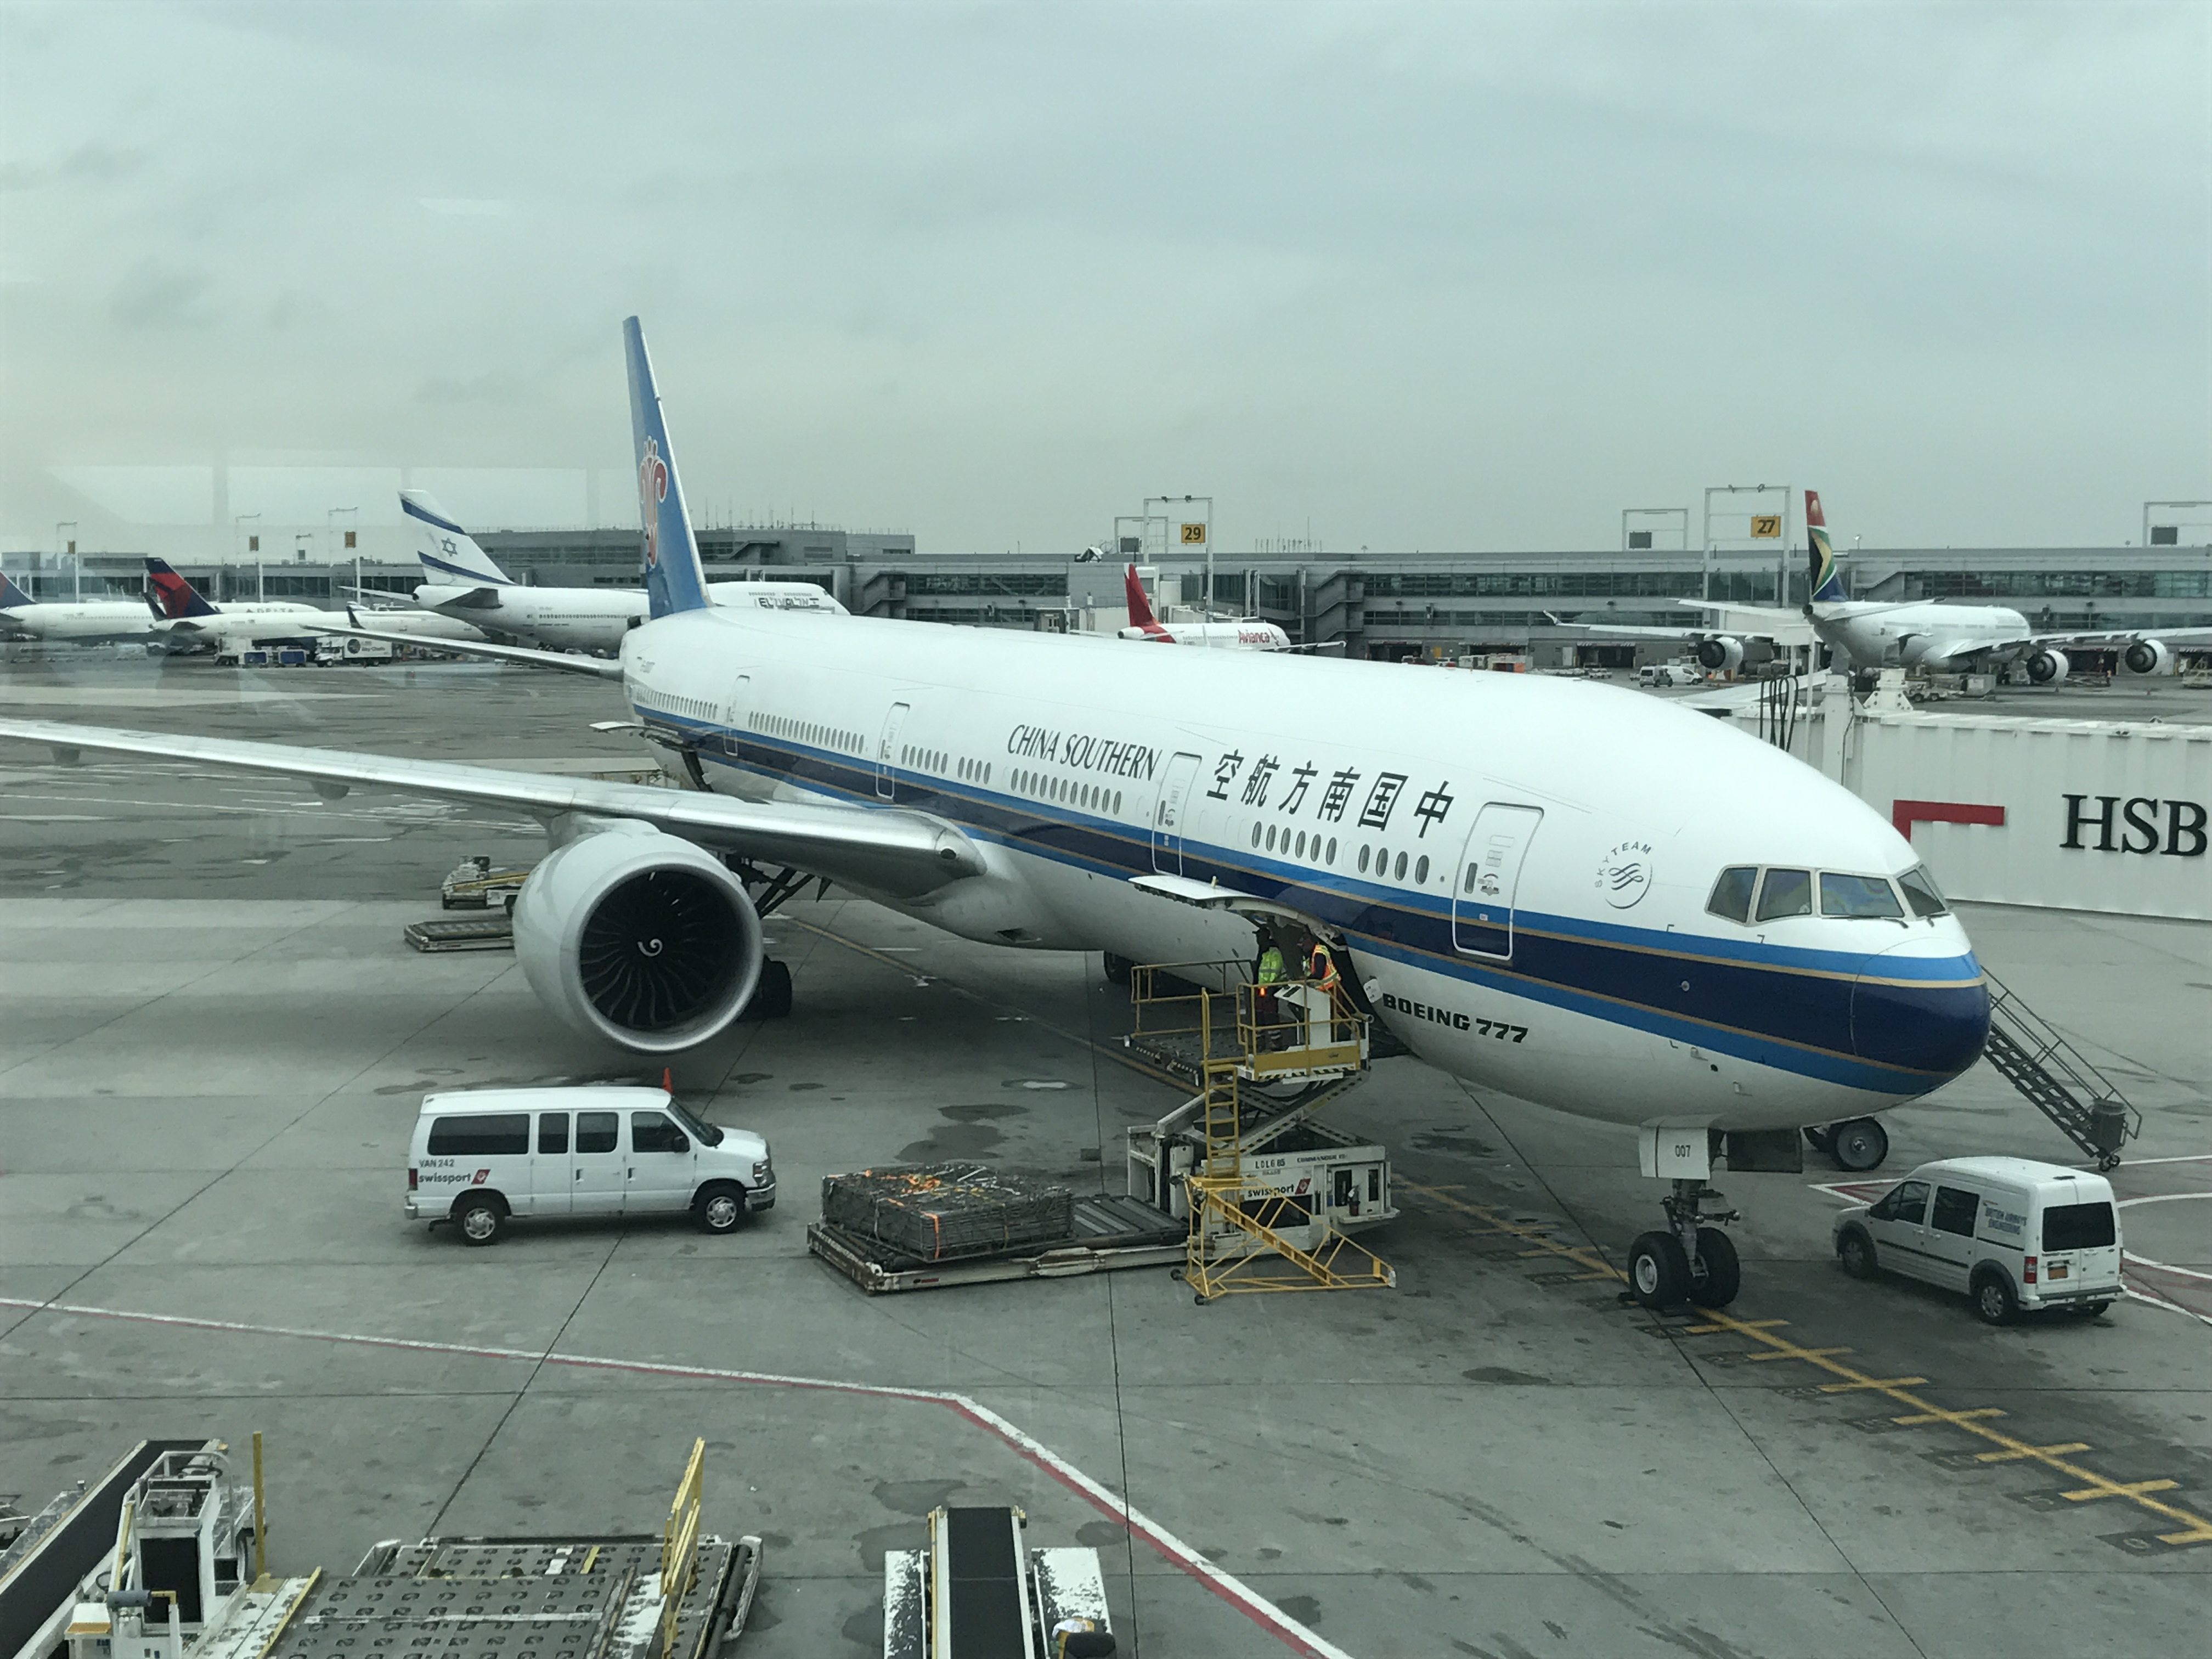 china southern airlines 120 reviews of china southern airlines booked a r/t flight to se asia (lax- can) on this airline, it was the only chinese carrier recommend by our travel agent in one word.